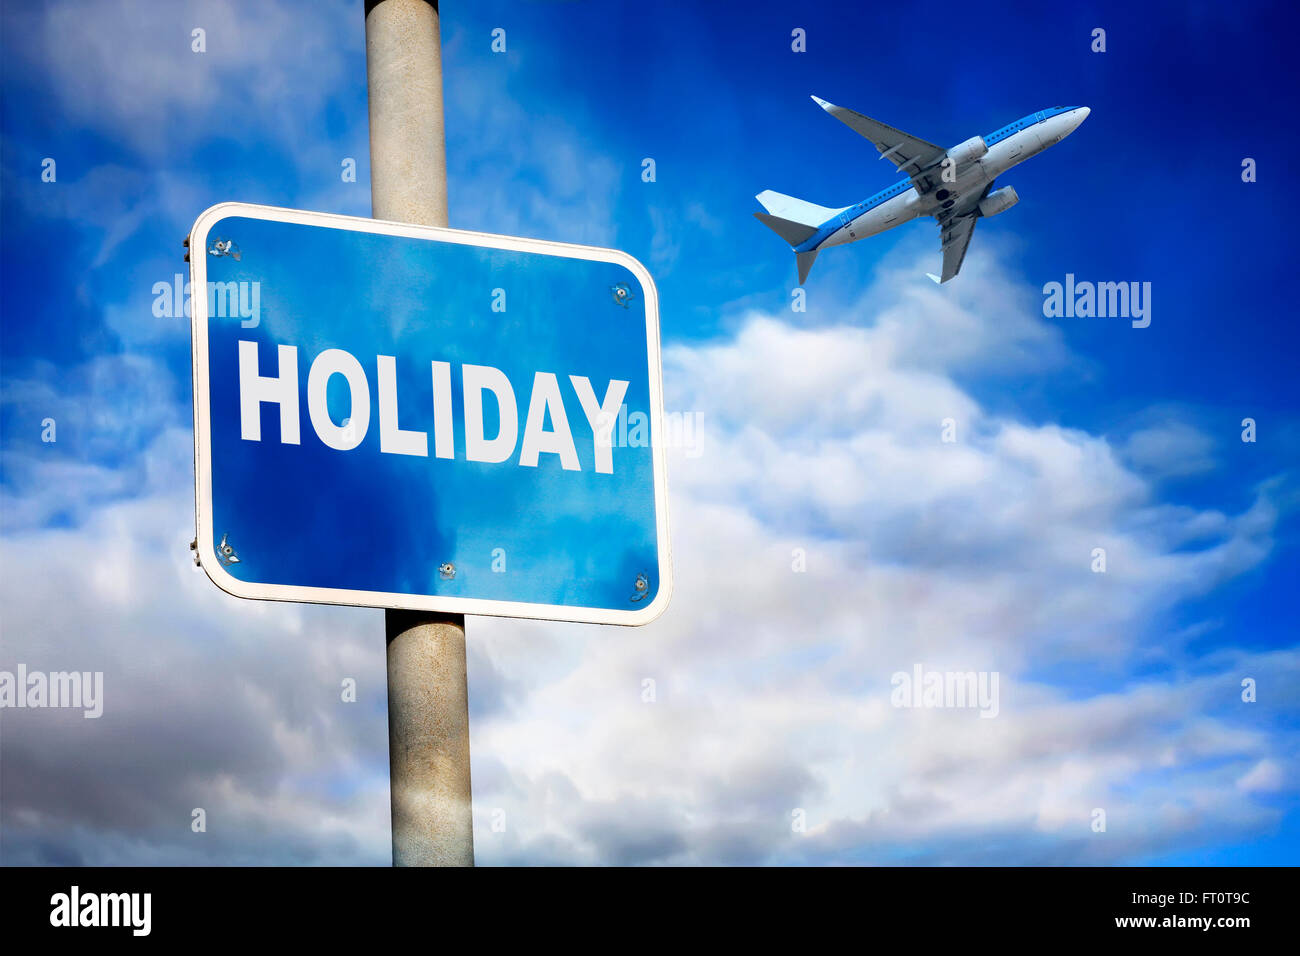 Holiday sign and jet plane against a blue sky Stock Photo